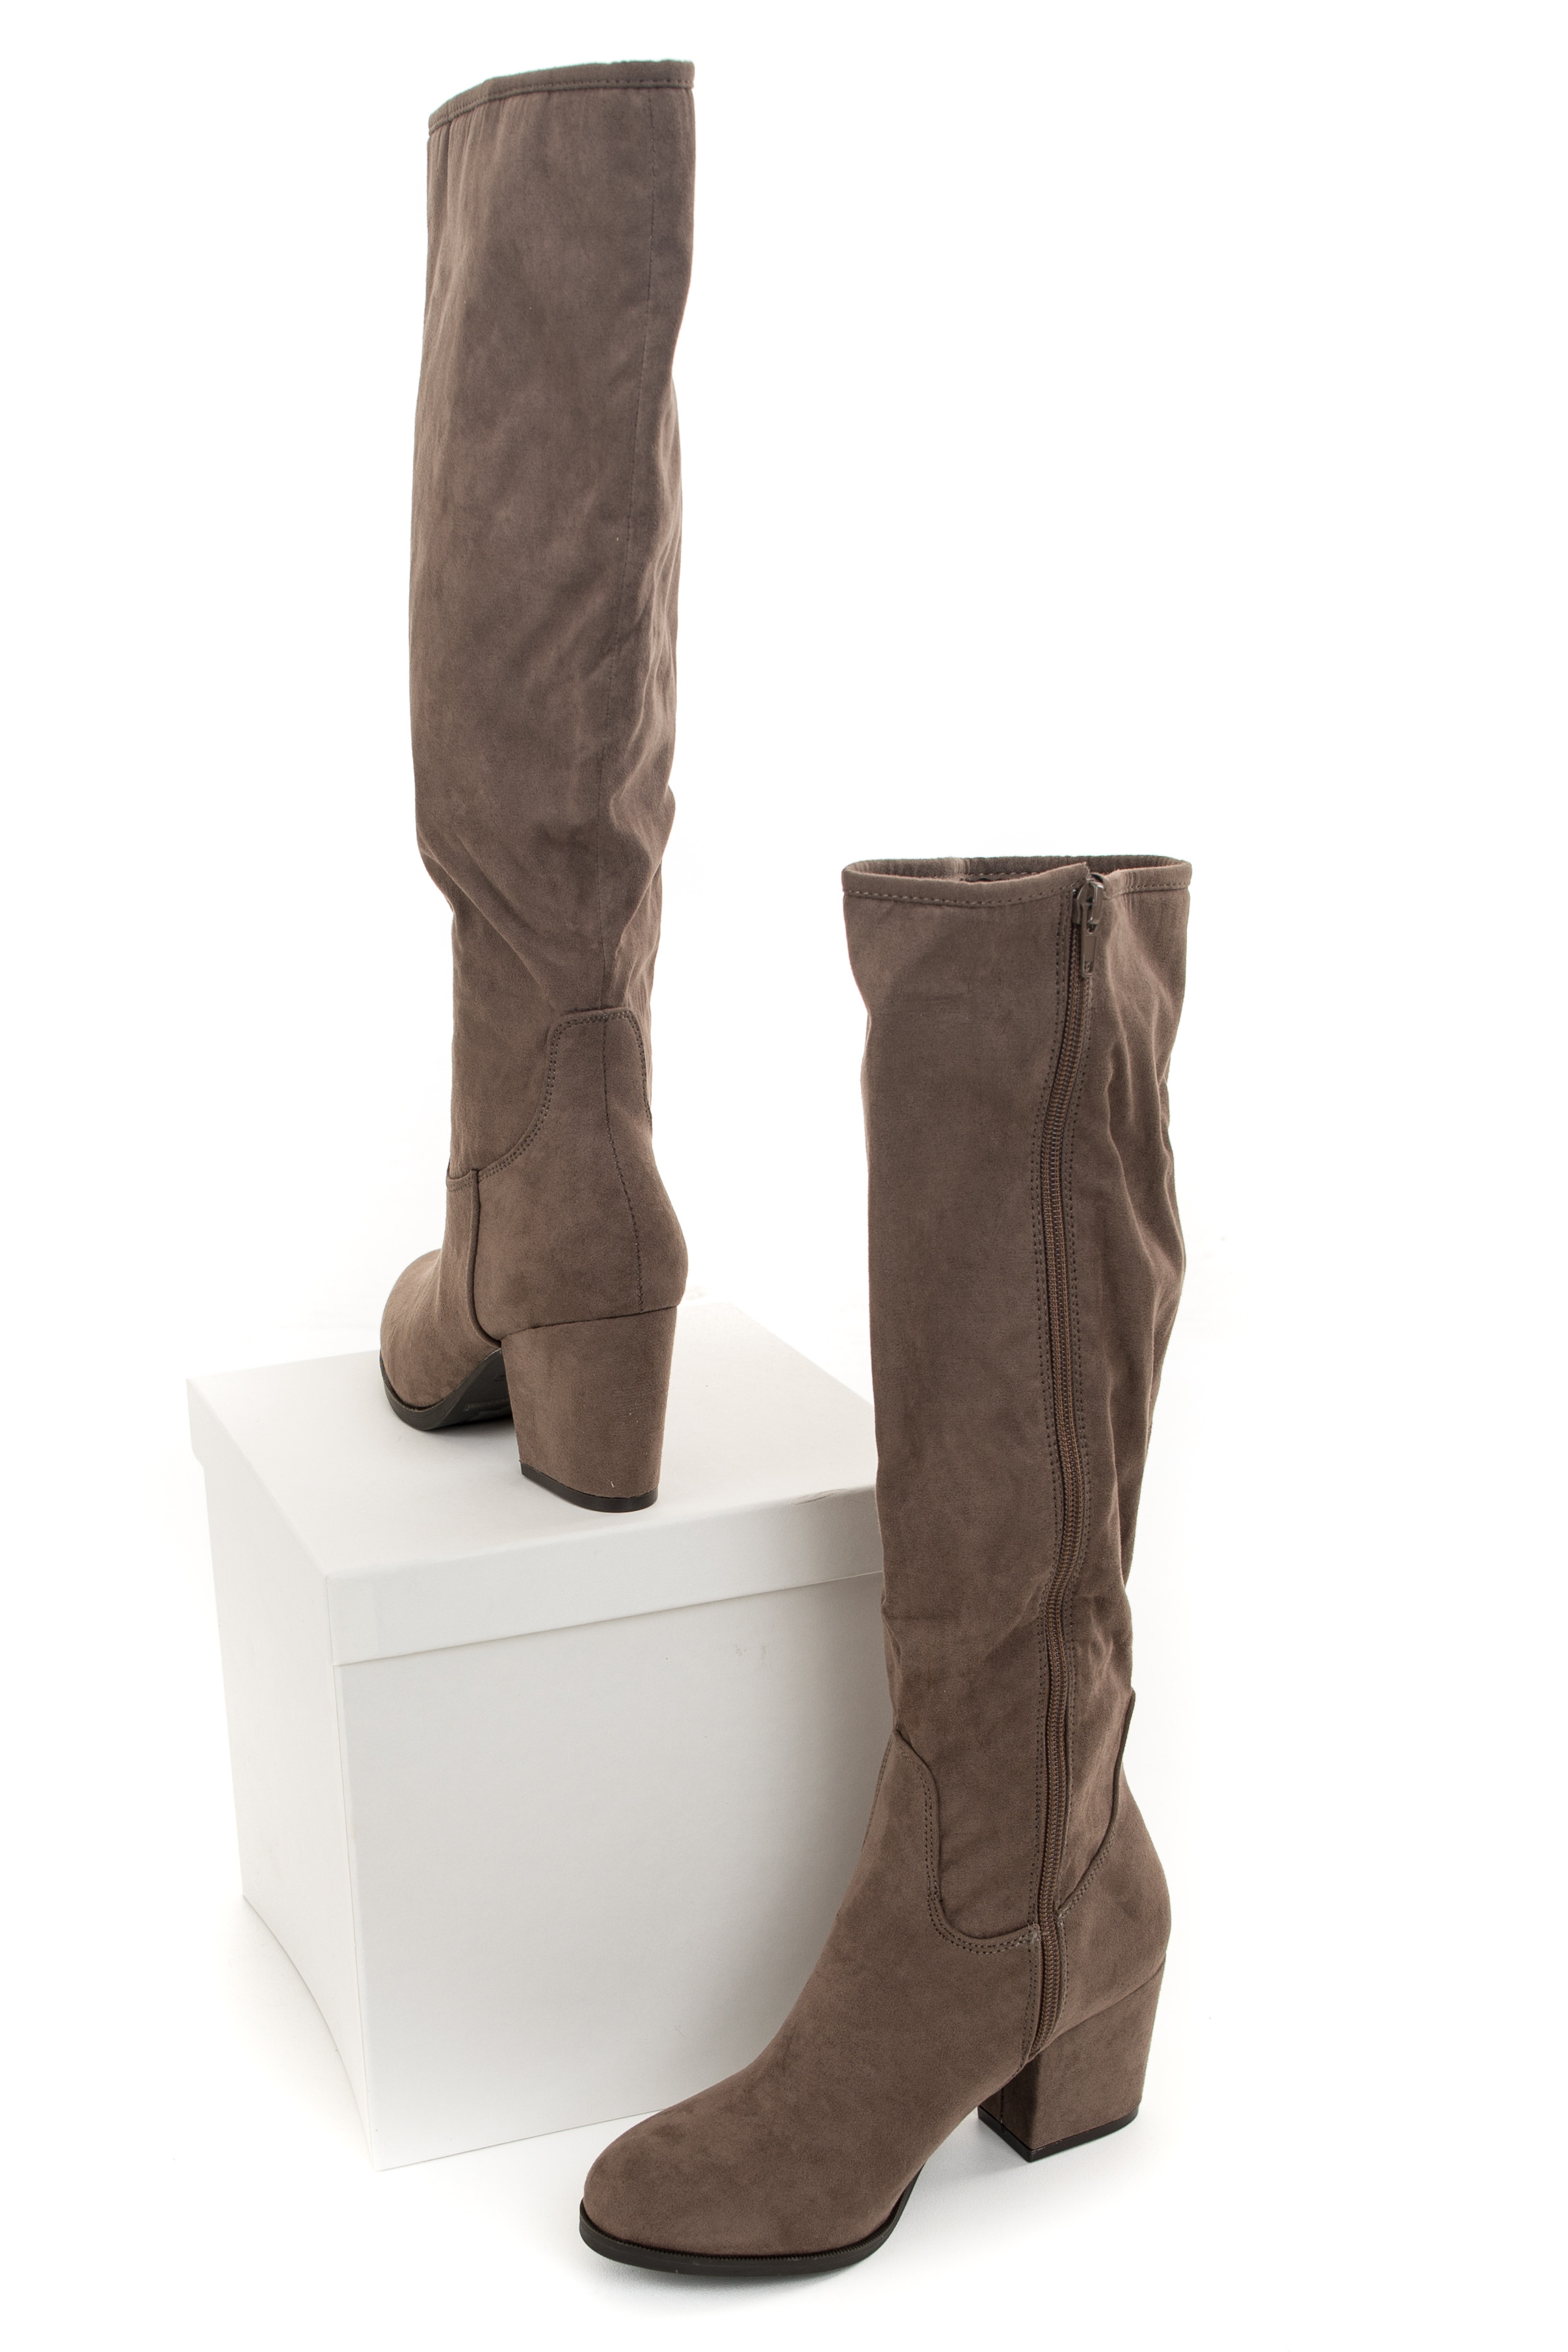 Taupe Rounded Toe Chunky Heel Knee High Boots